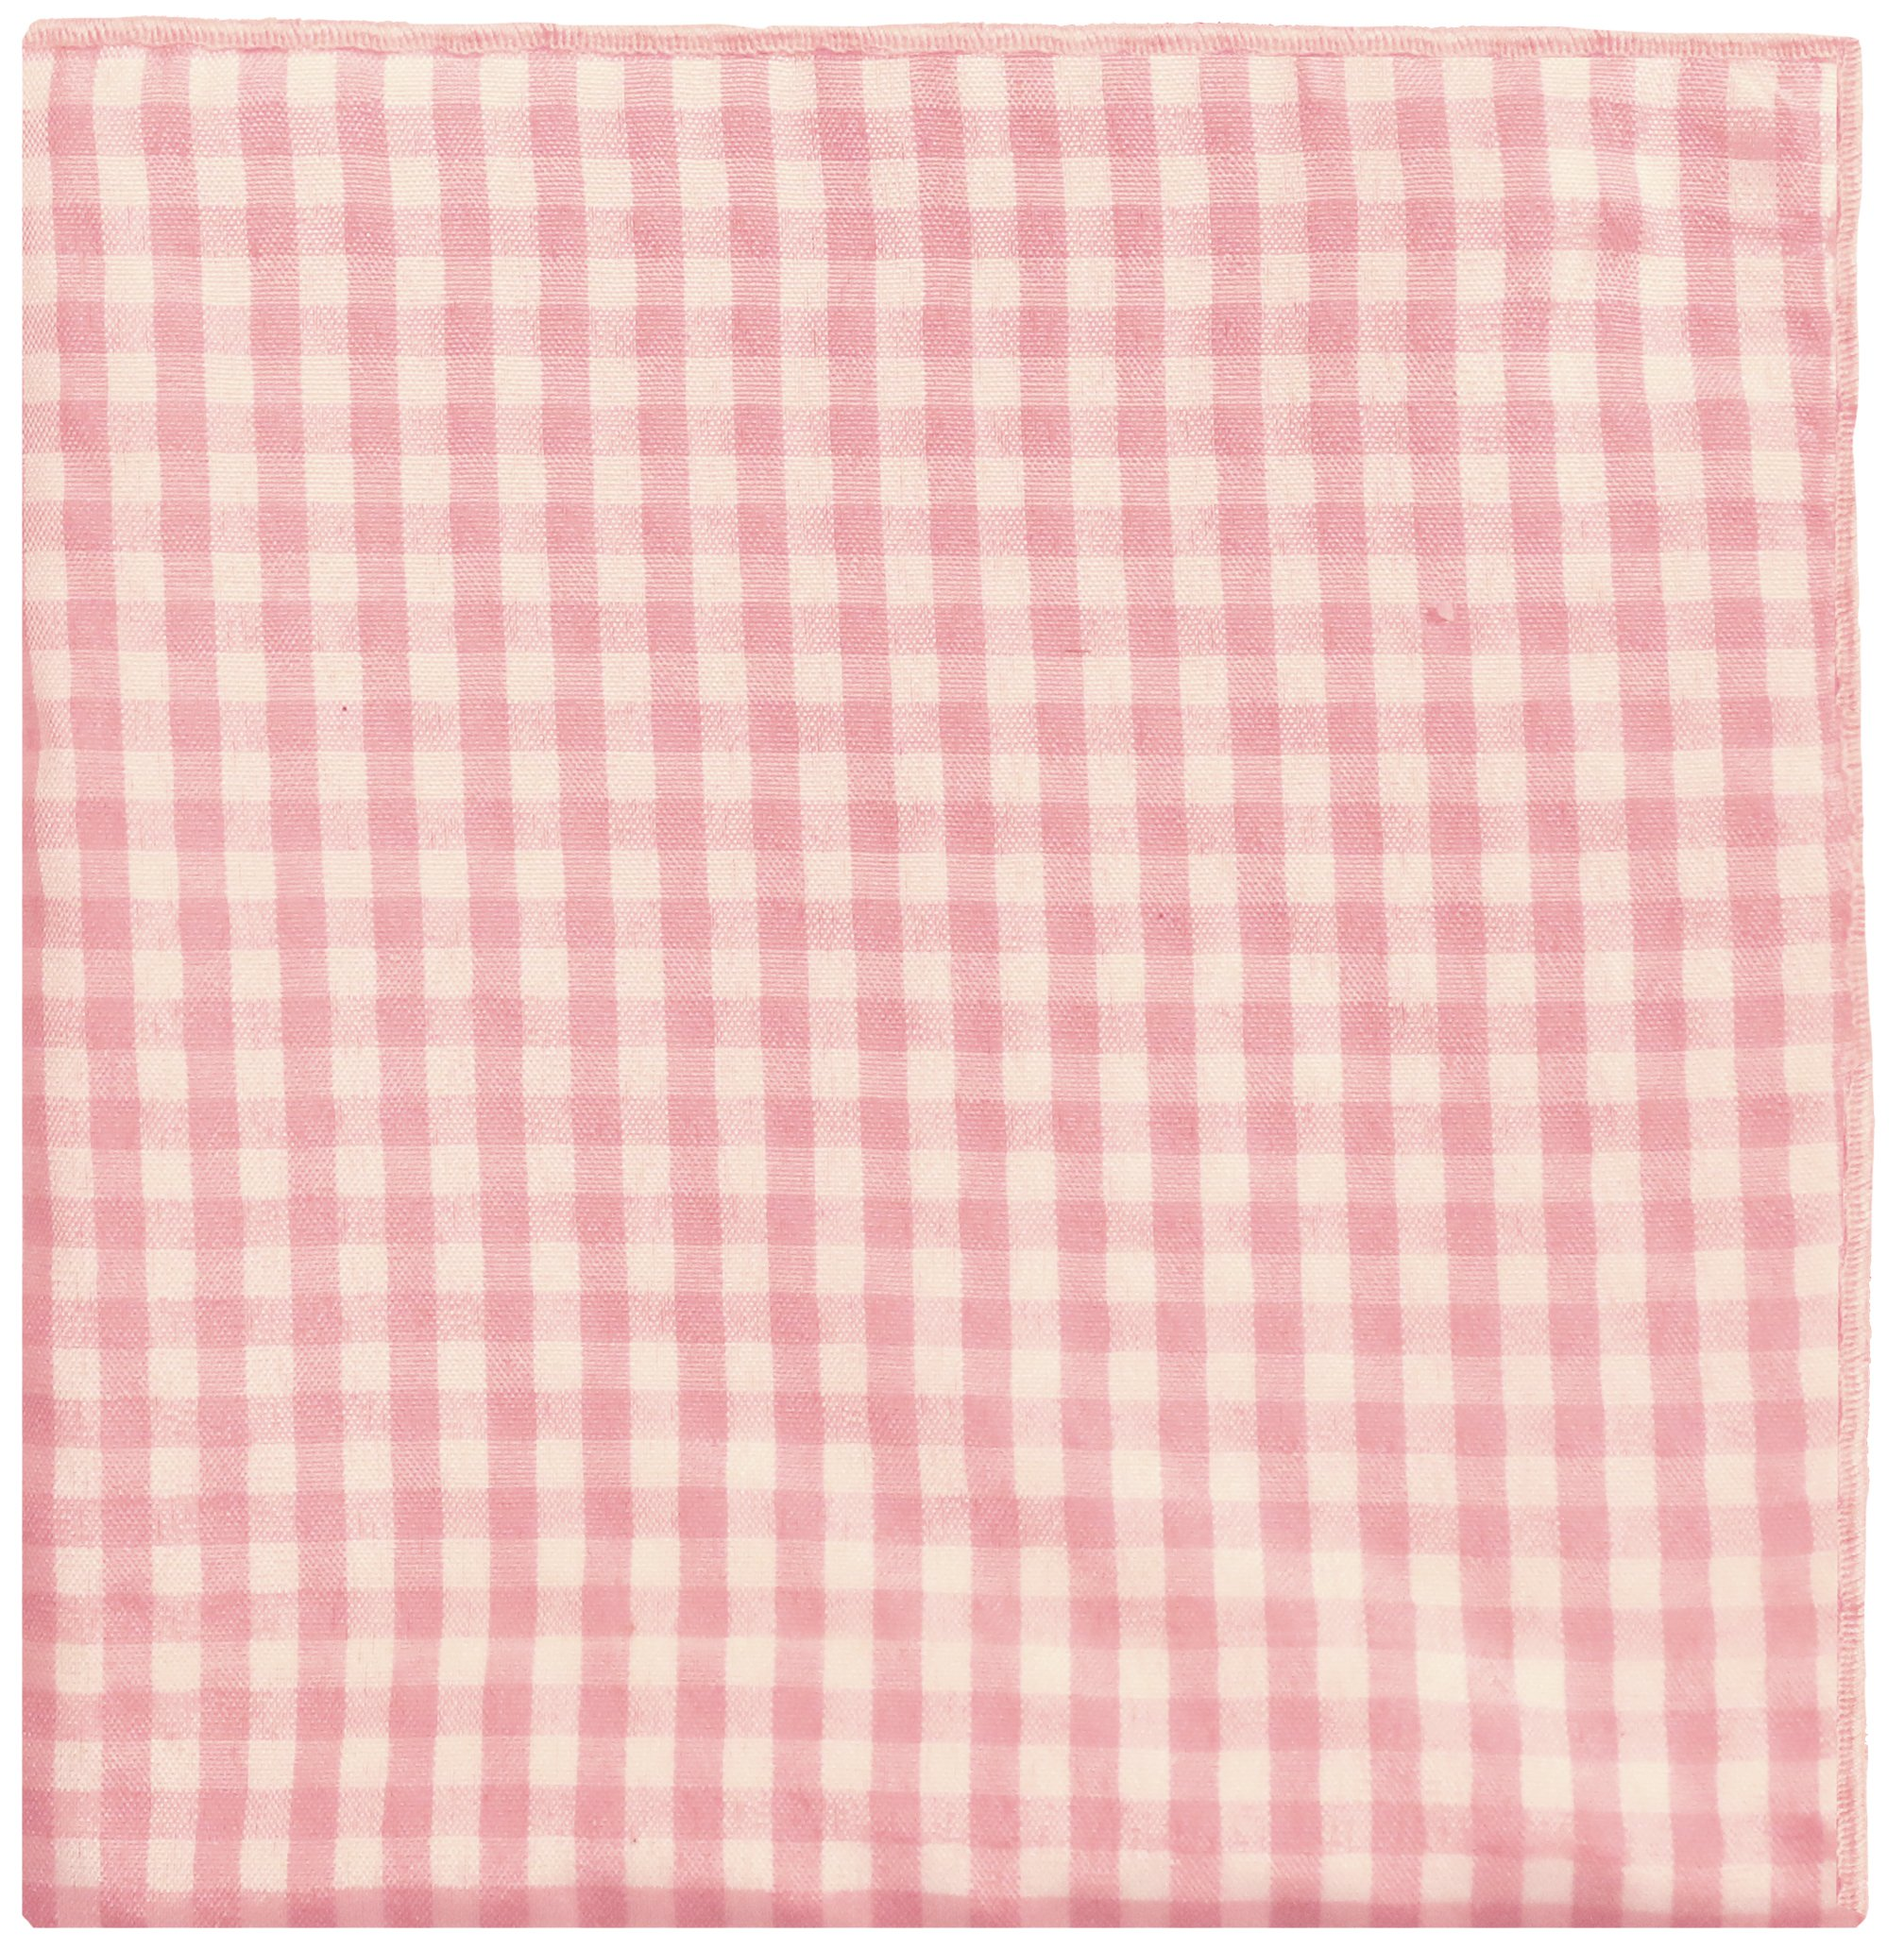 Light Pink & White Check w/ White Button Men's Pocket Square by The Detailed Male by The Detailed Male (Image #2)